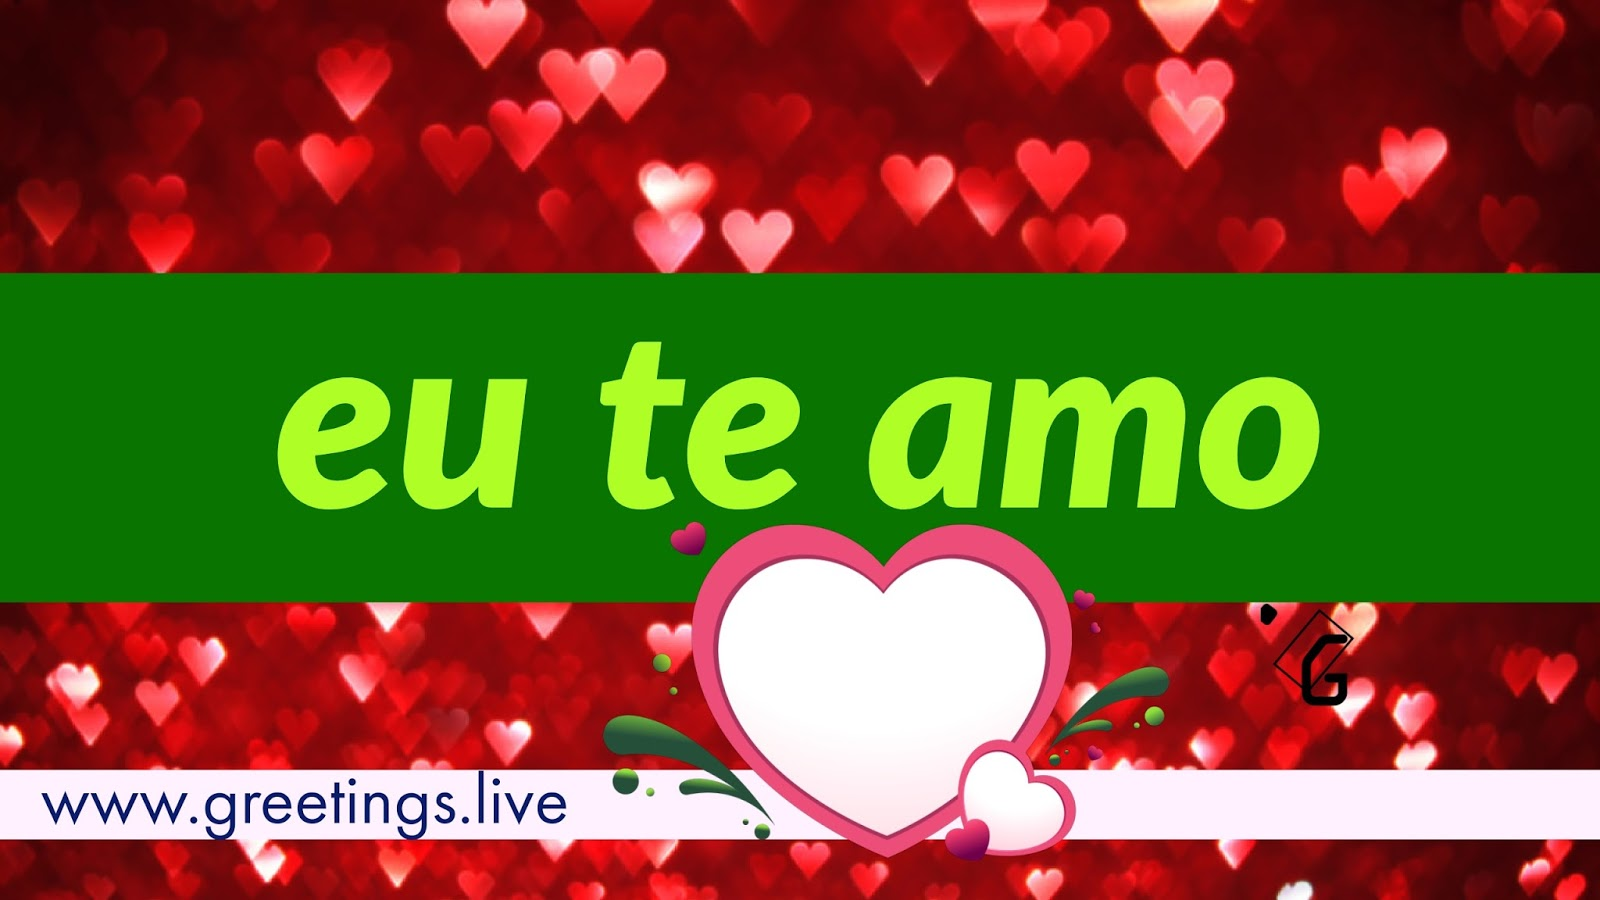 Greetingsve hd images love smile birthday wishes free download i i love you in portuguese language greetings hd kristyandbryce Image collections